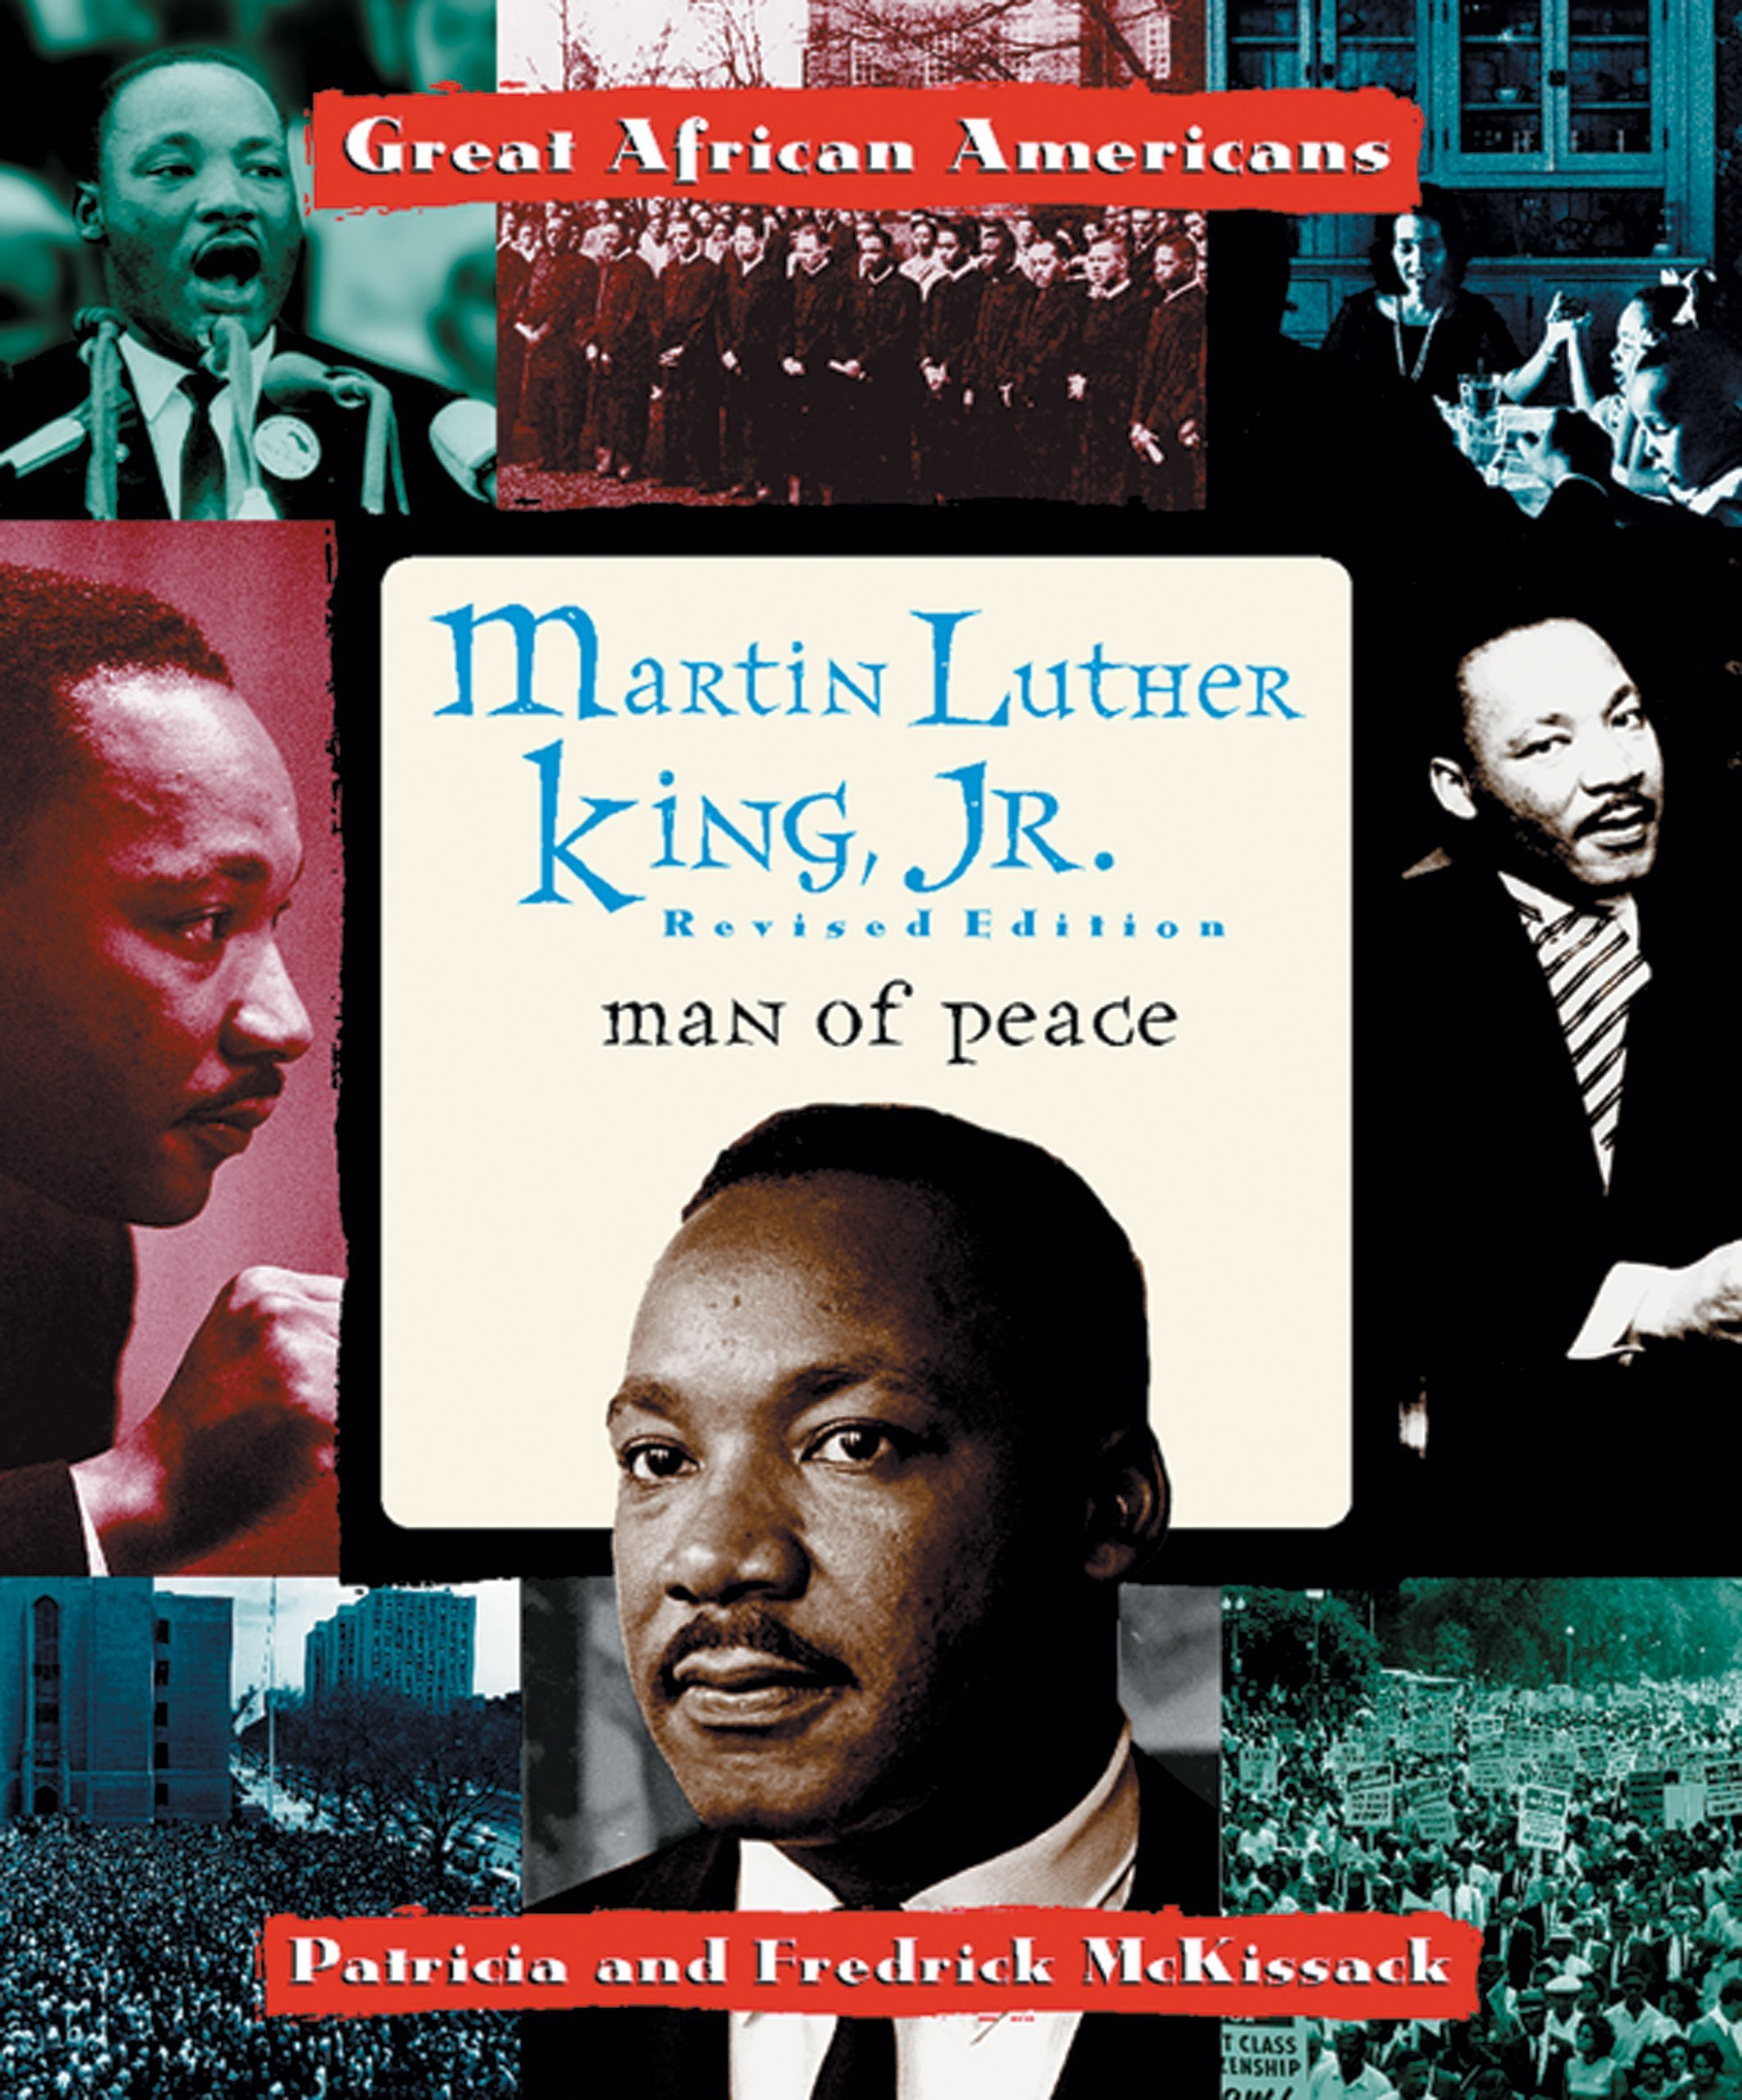 Martin Luther King, Jr: Man of Peace (Great African Americans Series)